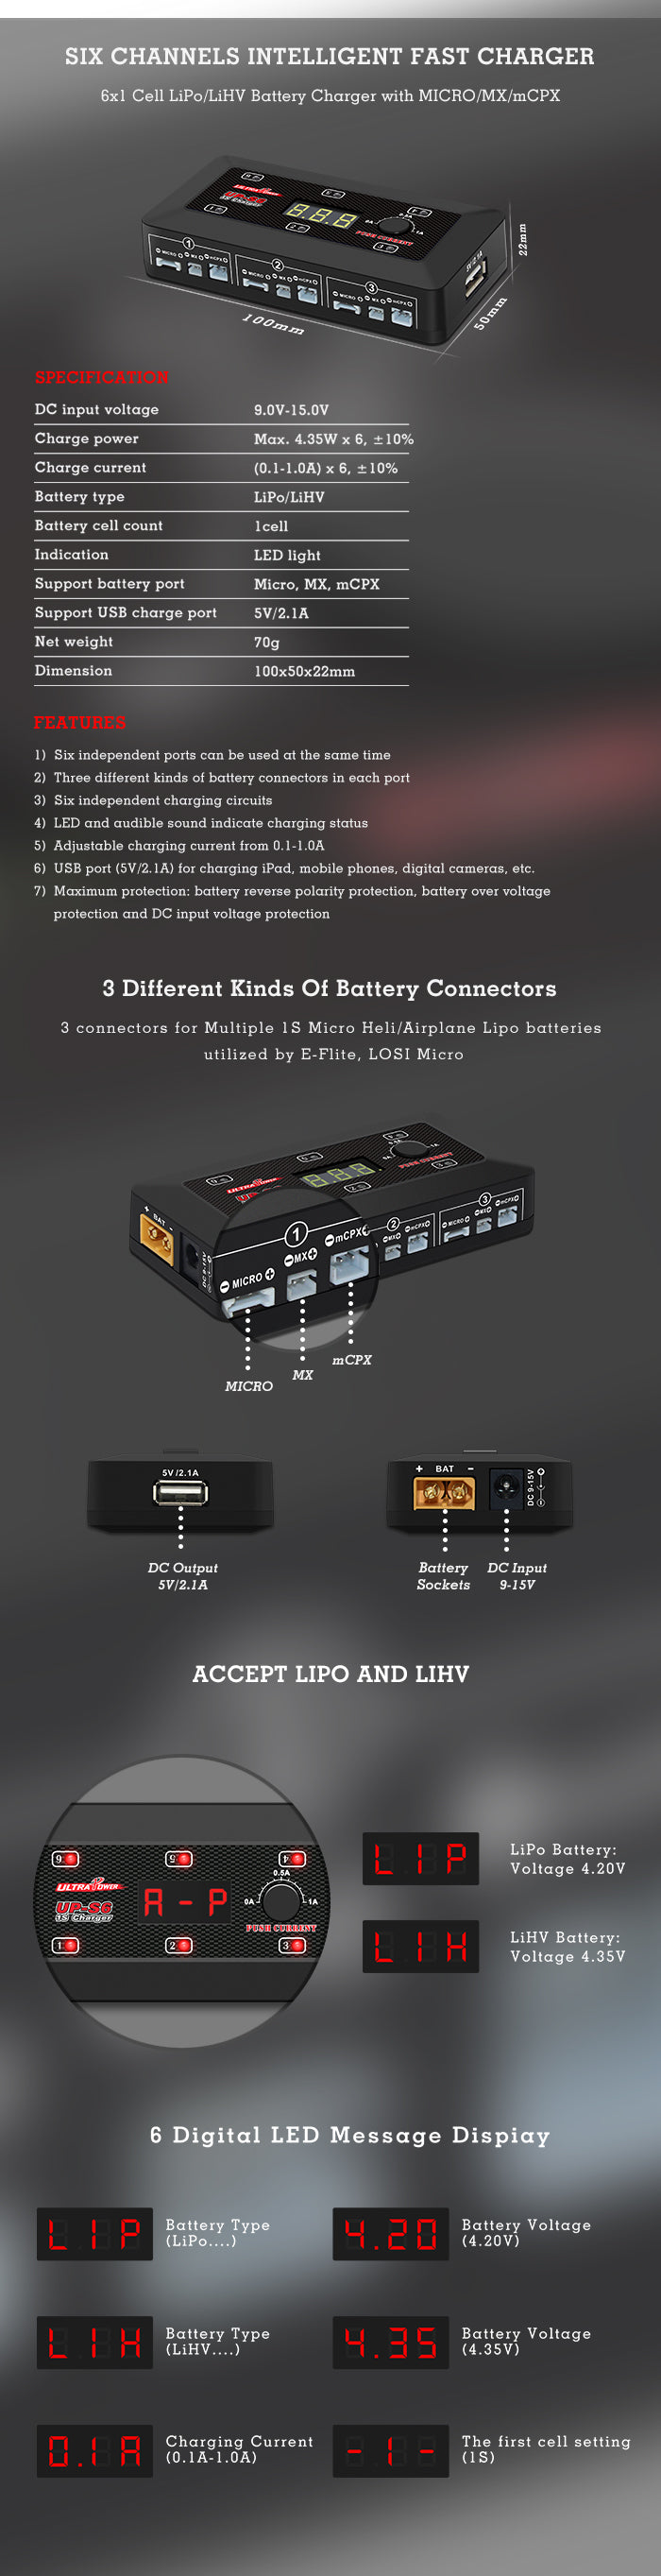 Up S6 1s Lipo Battery Charger Lihv For Blade Inductrix Reverse Polarity Protection Tiny